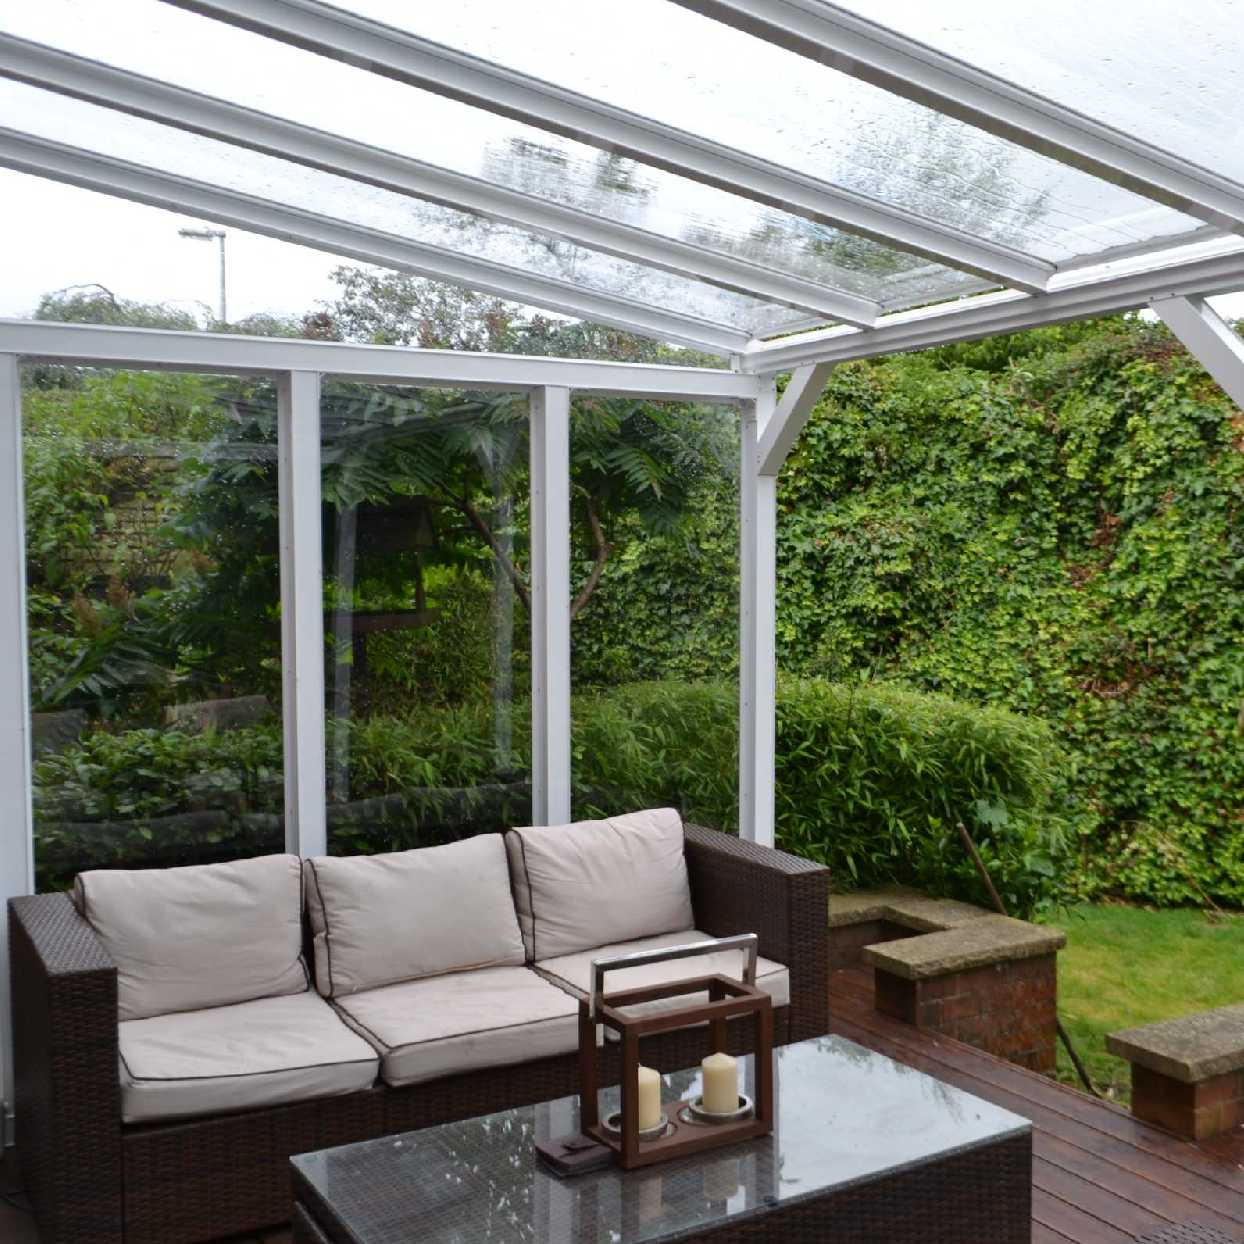 Great selection of Omega Smart Lean-To Canopy with 16mm Polycarbonate Glazing - 7.4m (W) x 2.0m (P), (4) Supporting Posts